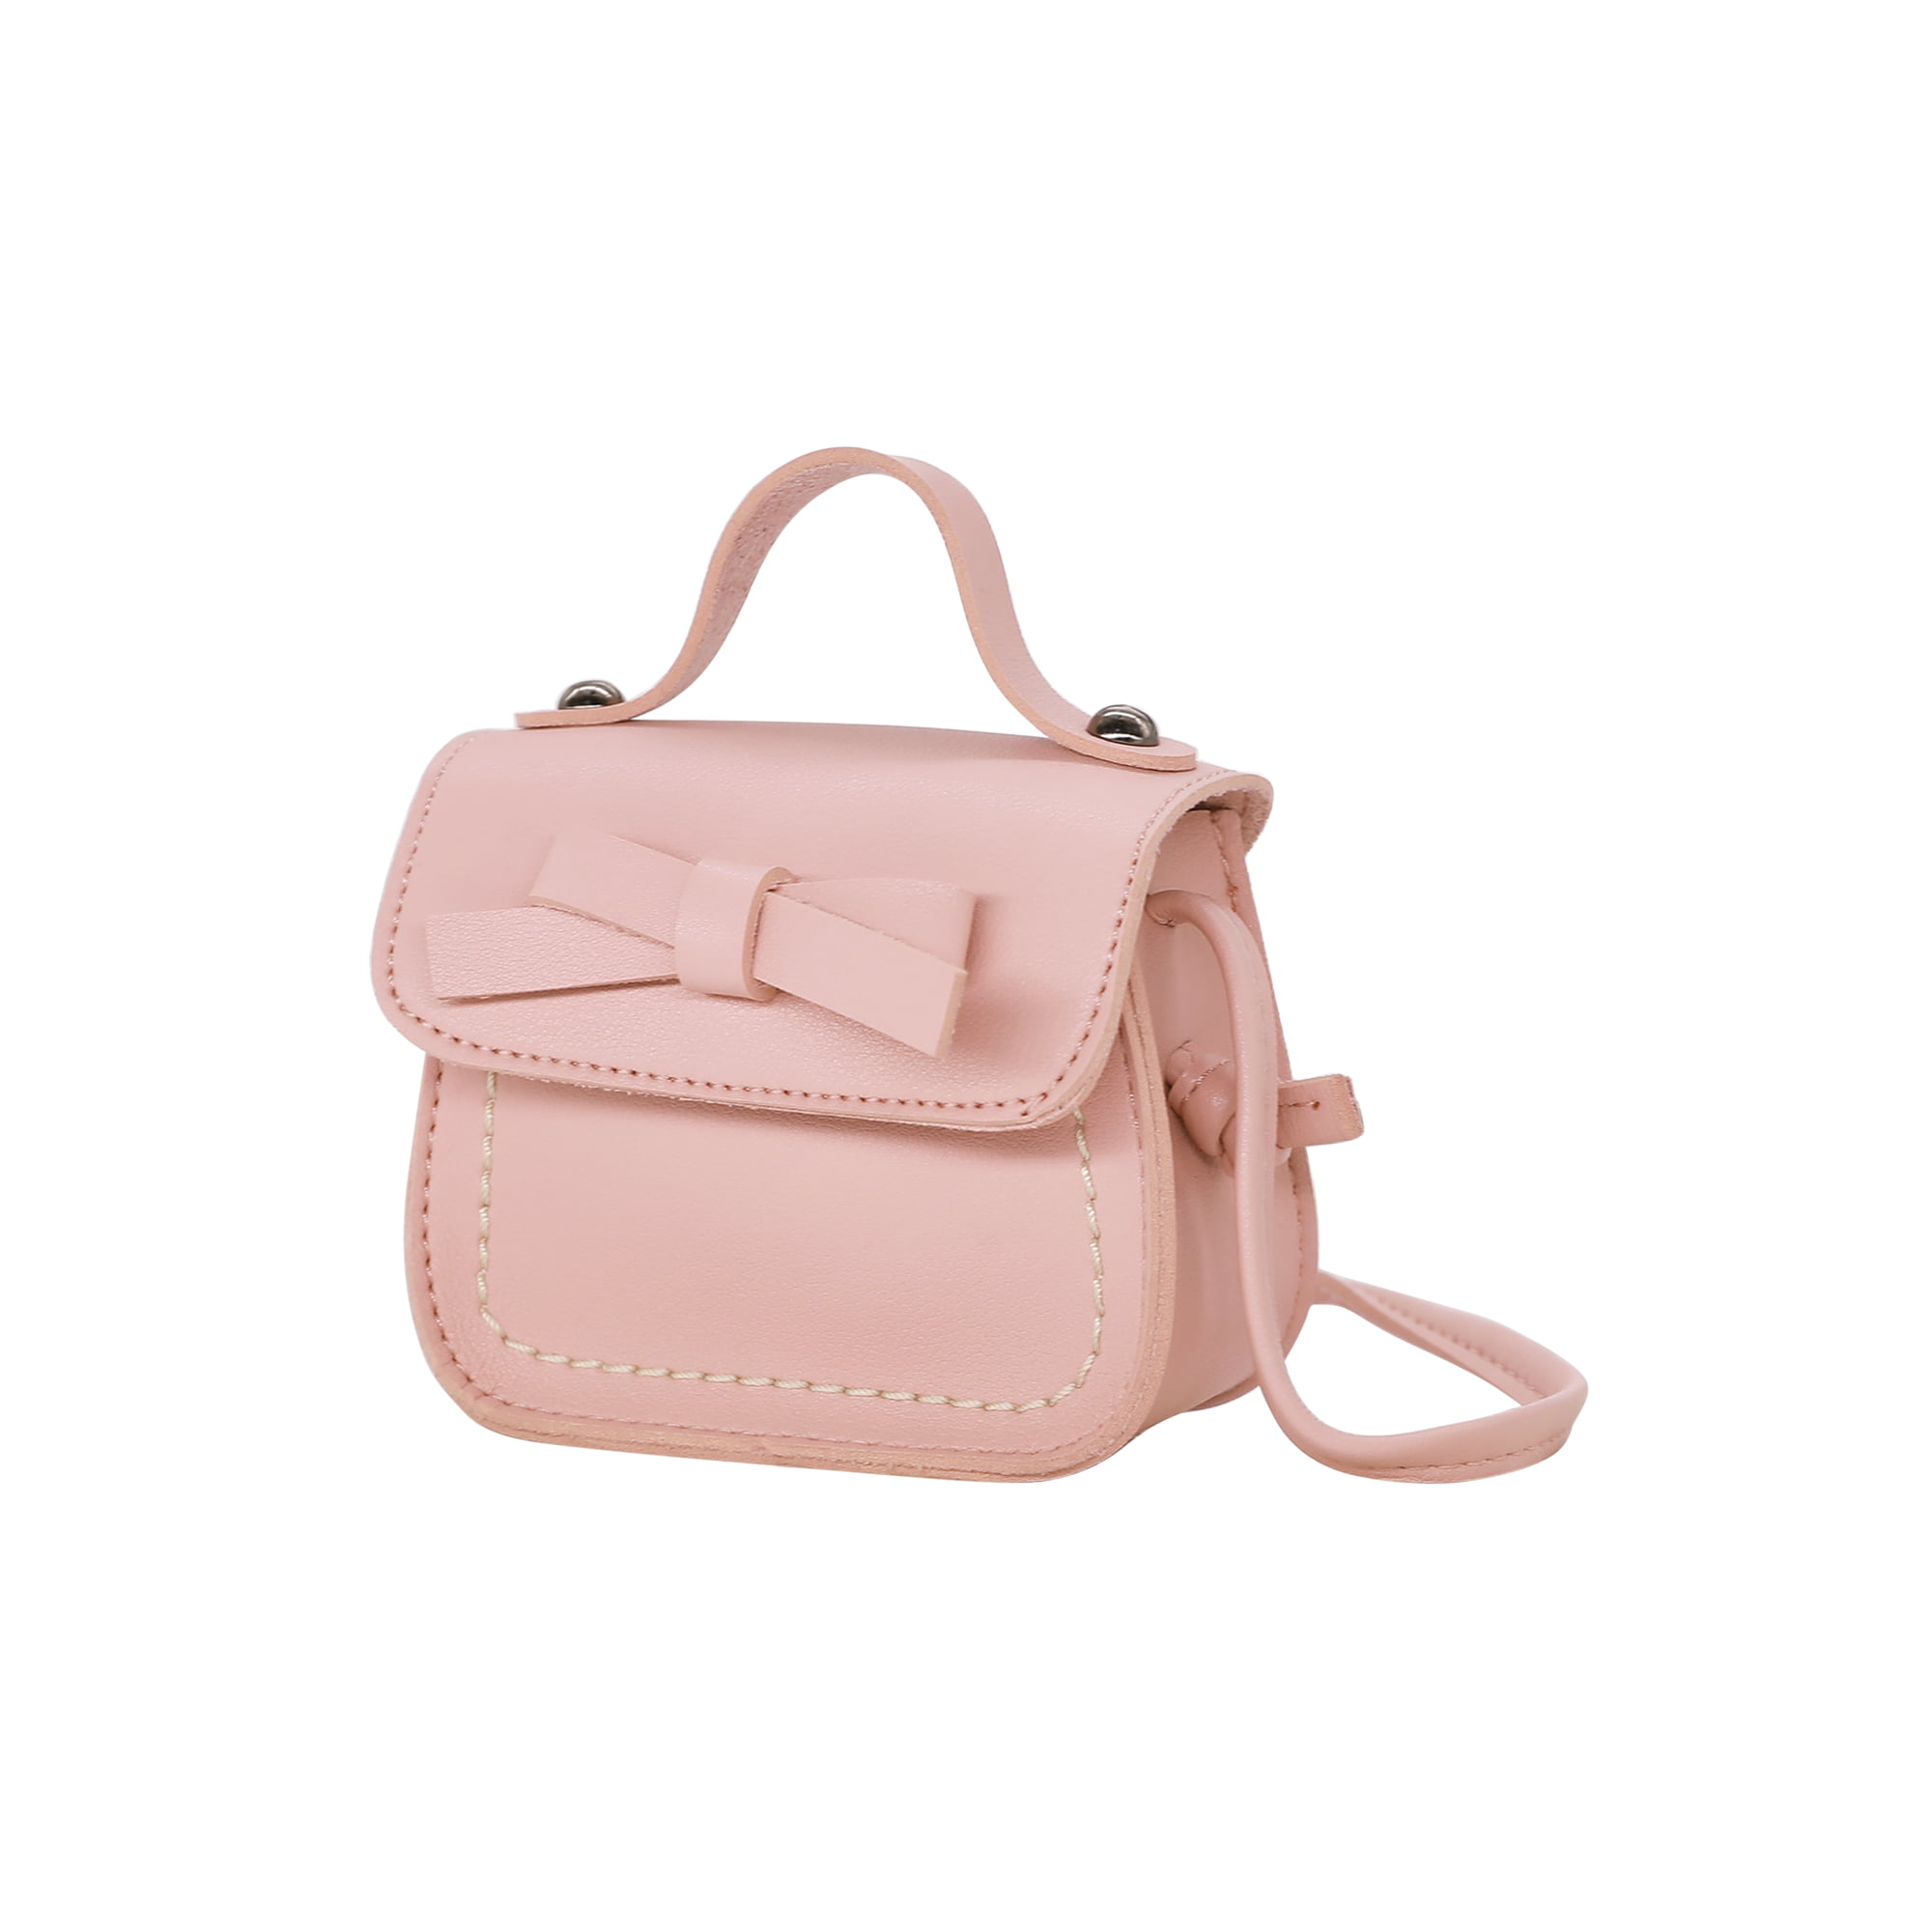 a268950a6fa19 HDE Small Fashion Purse for Little Girls Light Pink Toddler Kids Bag Cute  Bow (Light Blue) | Walmart Canada